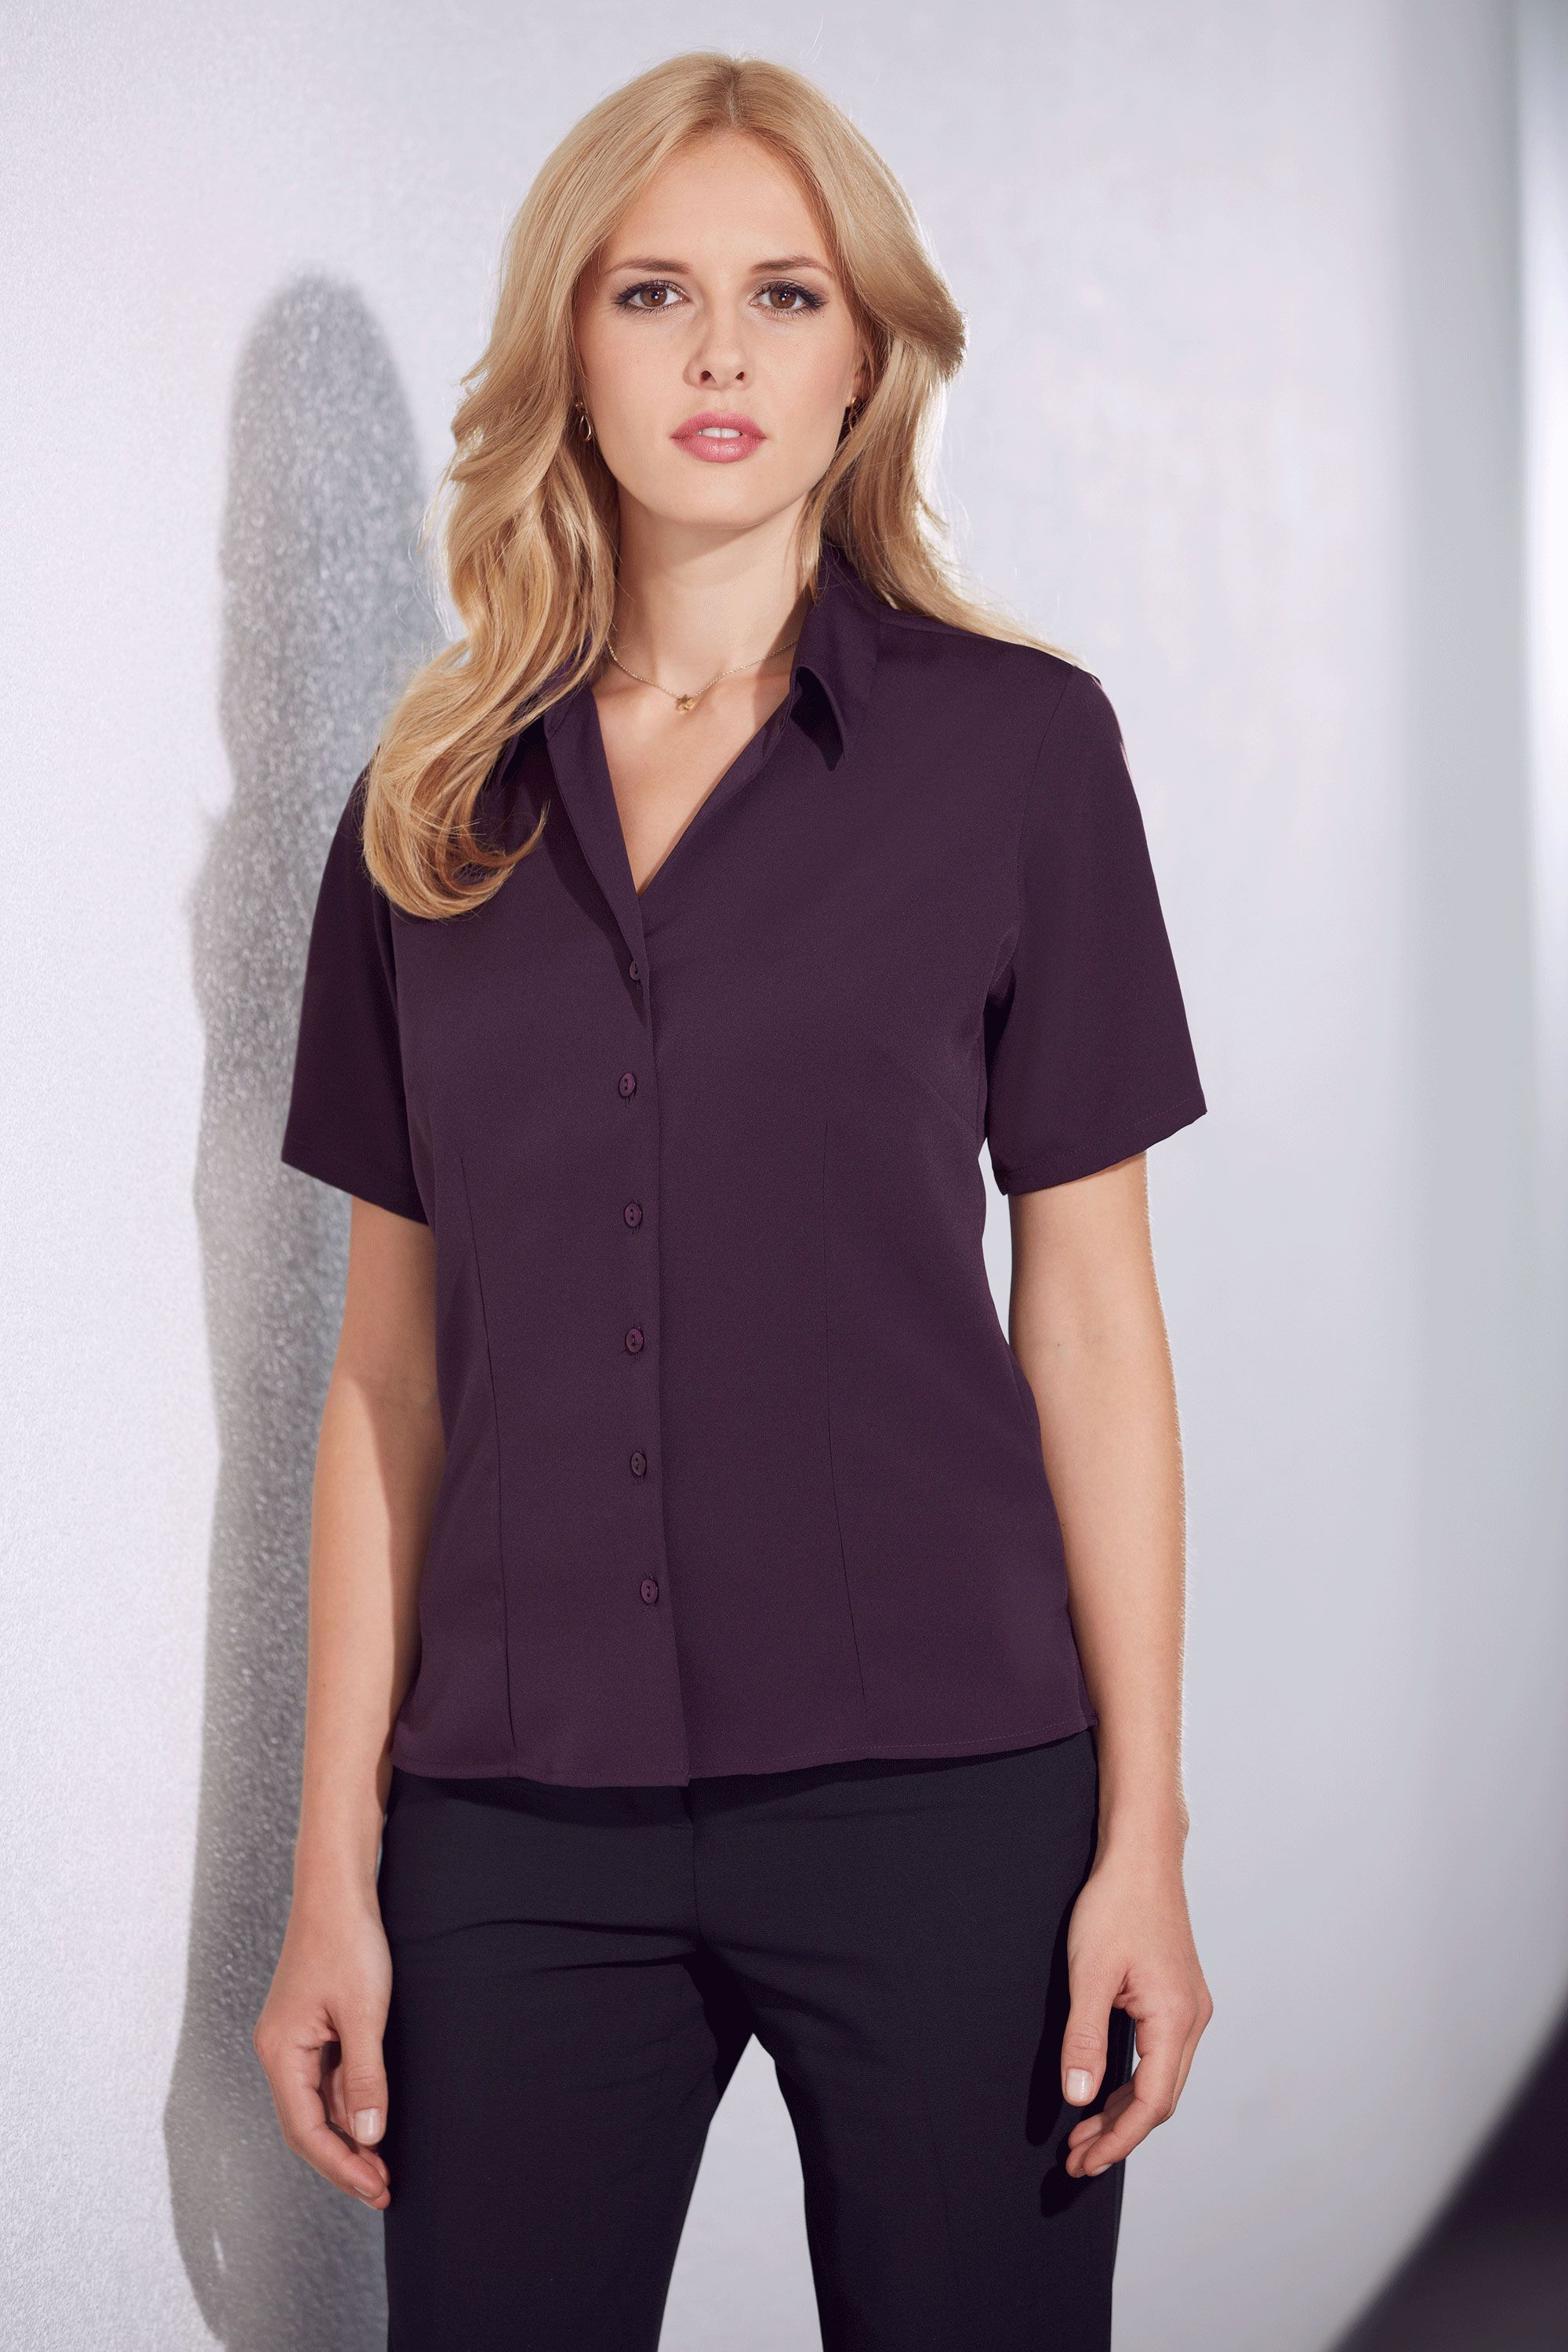 Plum Semi-fitted blouse